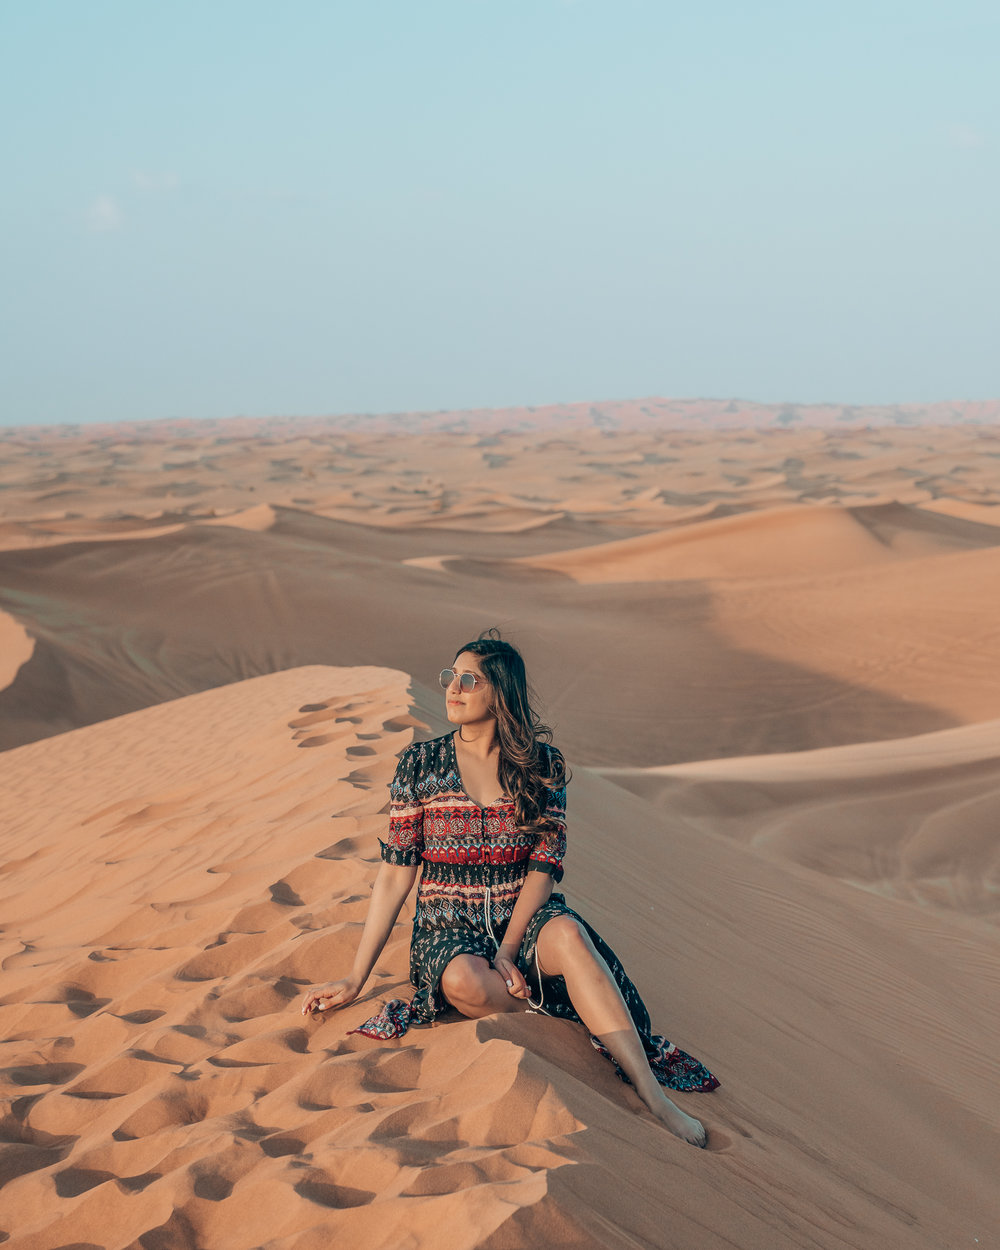 Red Sand Dunes, Dubai Desert Safari Tour, United Arab Emirates